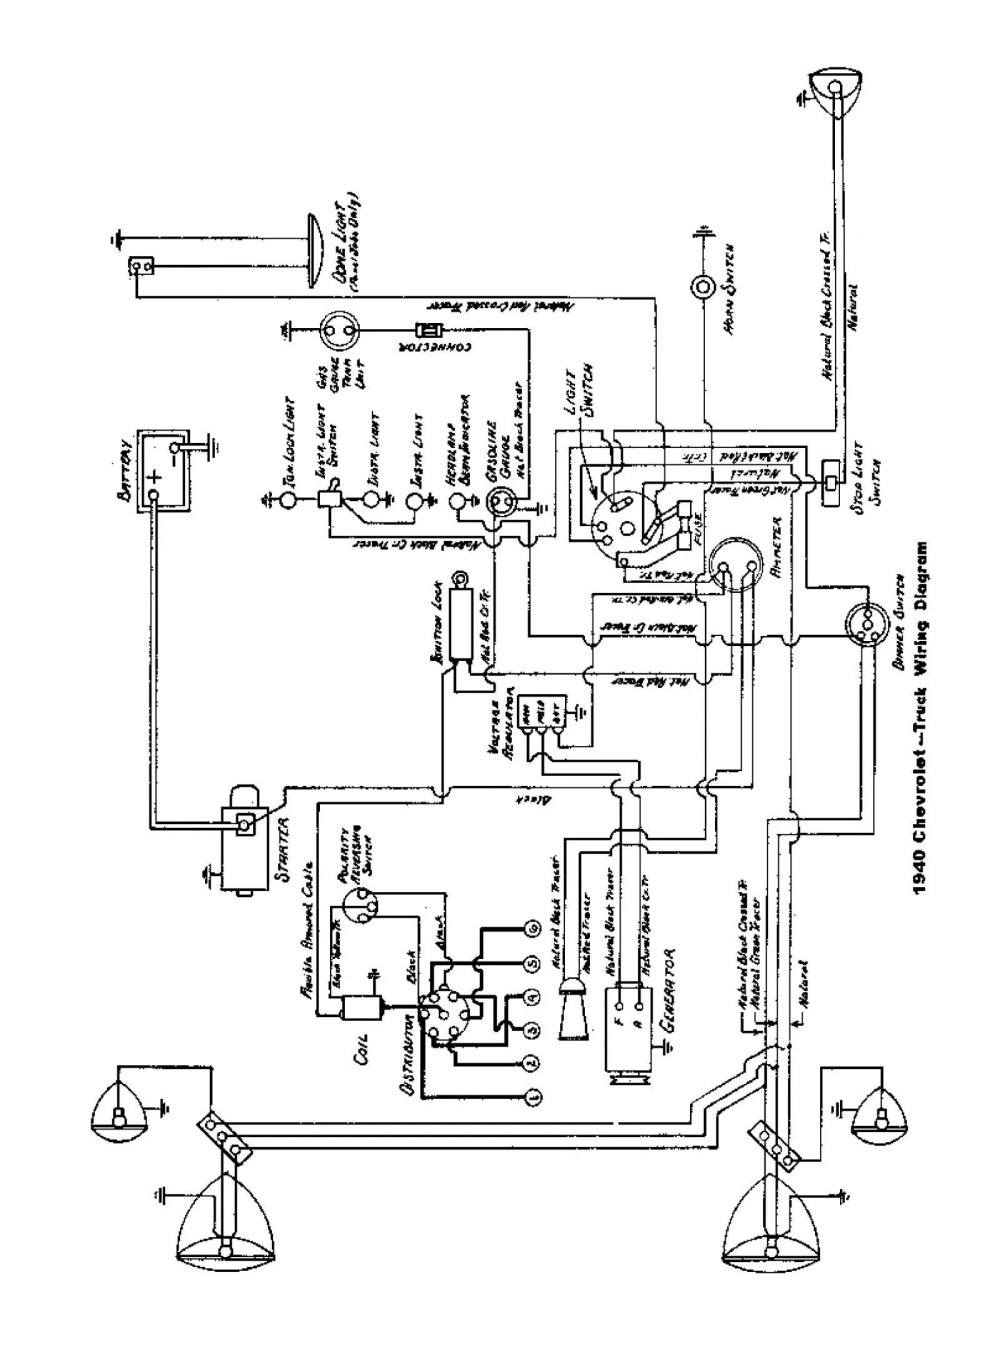 medium resolution of plymouth wiring harness manual e book 1948 plymouth wiring harness 1955 plymouth wire harness diagram wiring